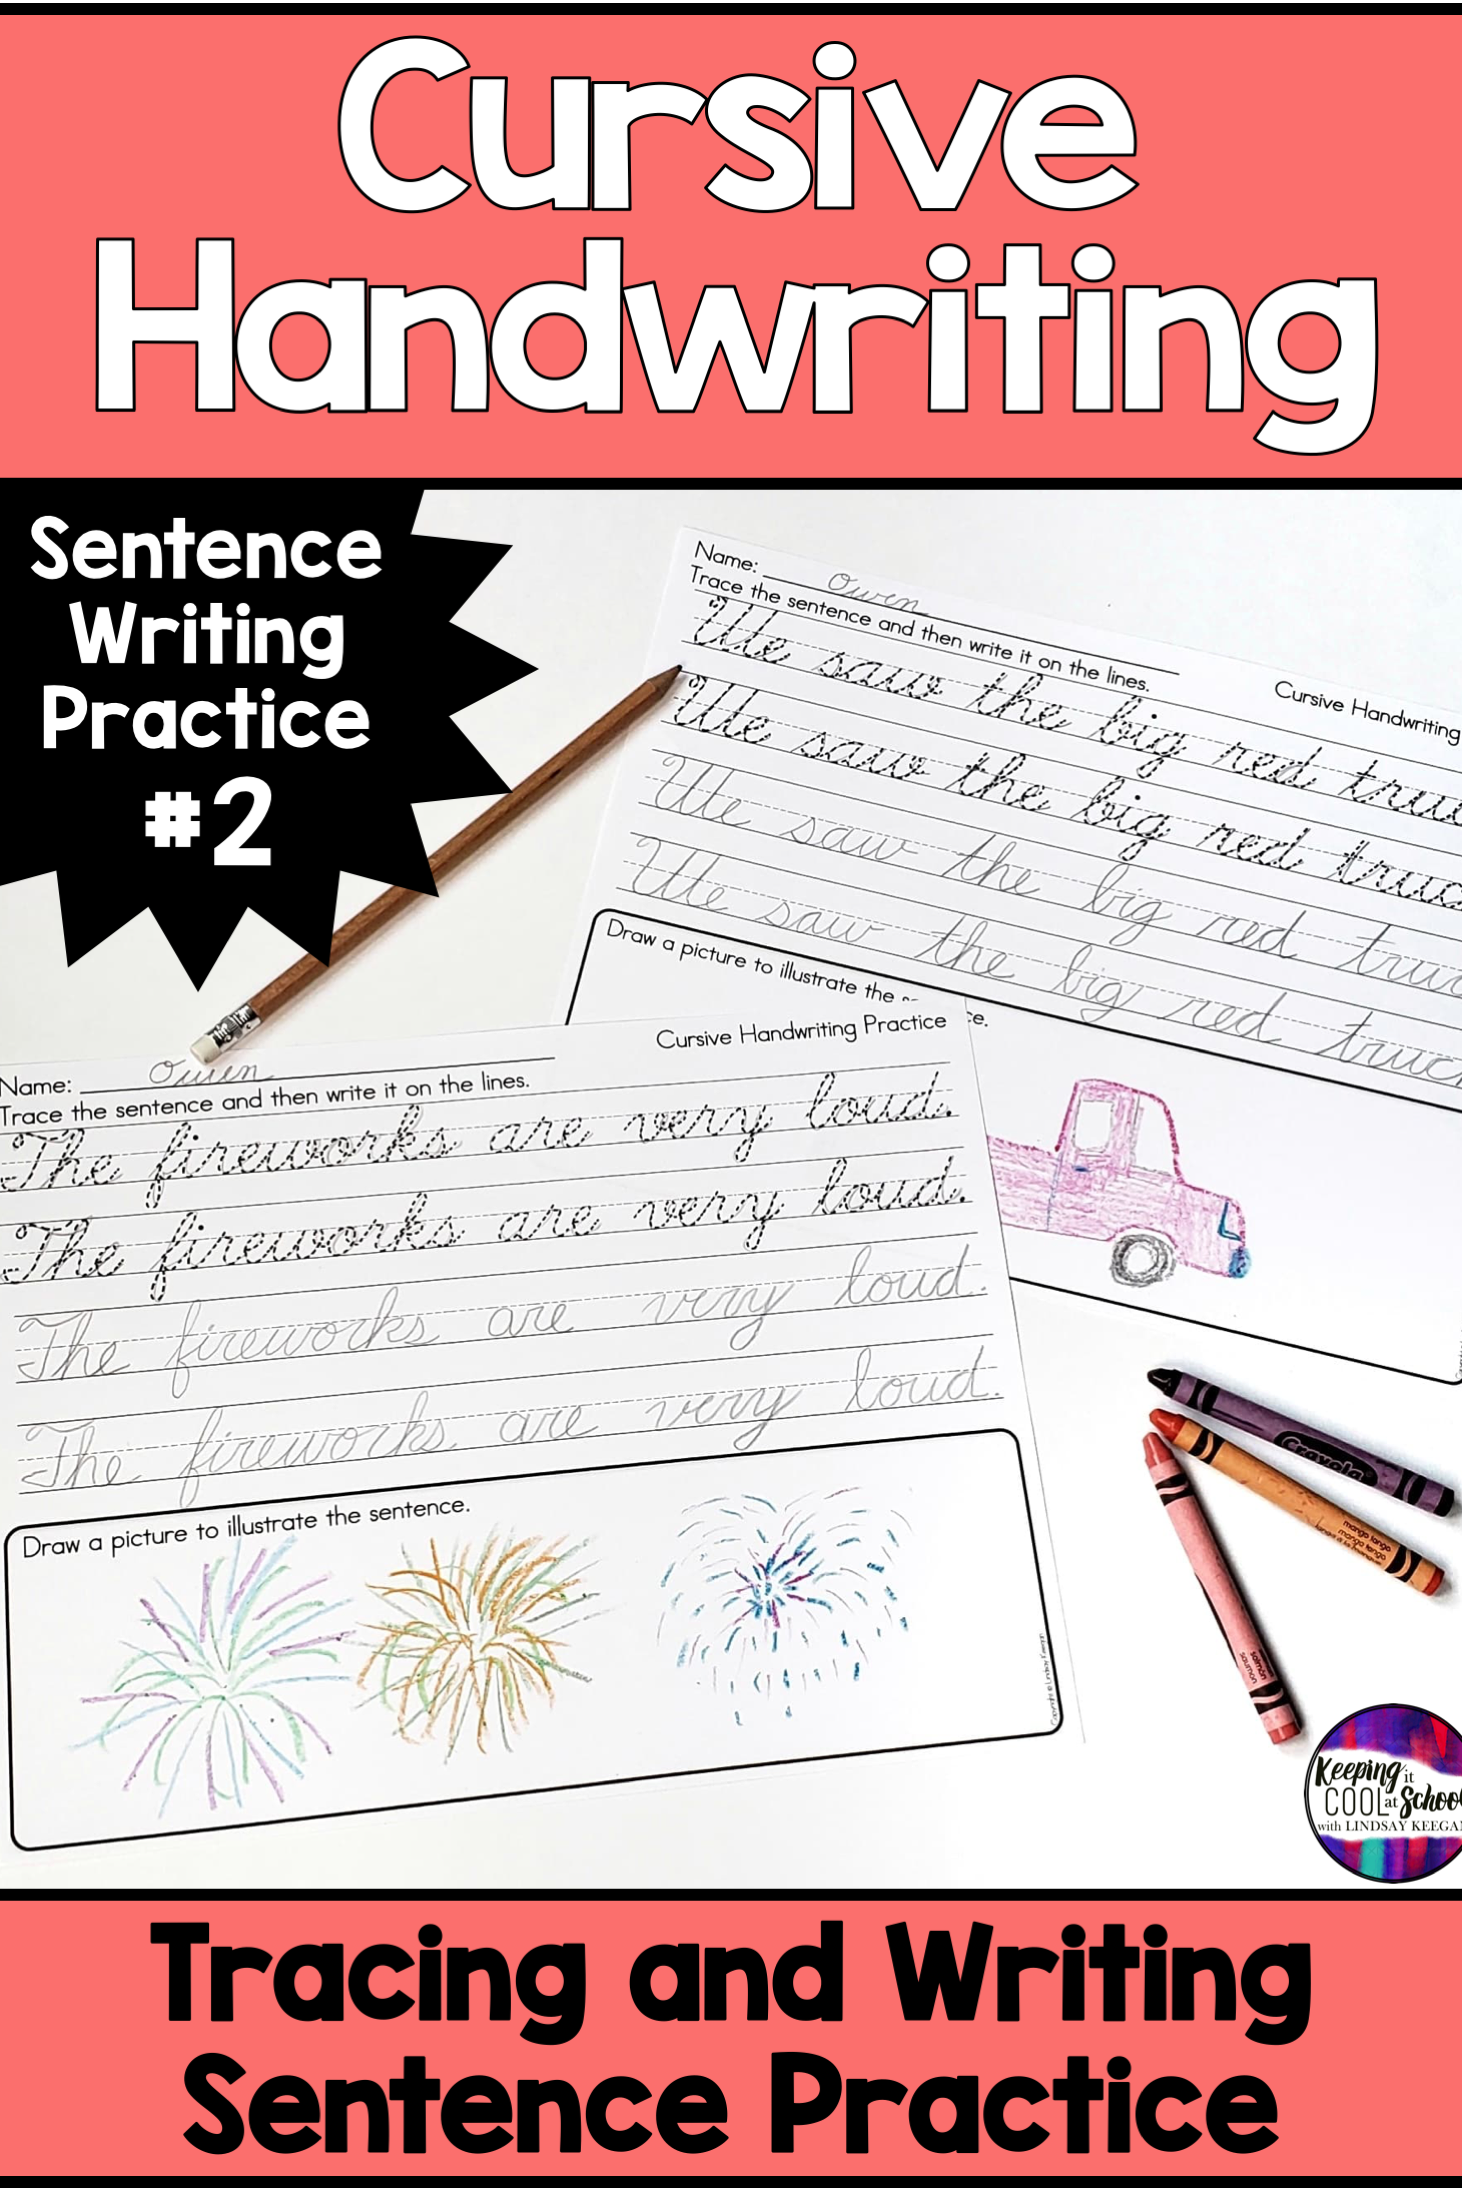 Cursive Handwriting Practice With Sentence Writing Part 2